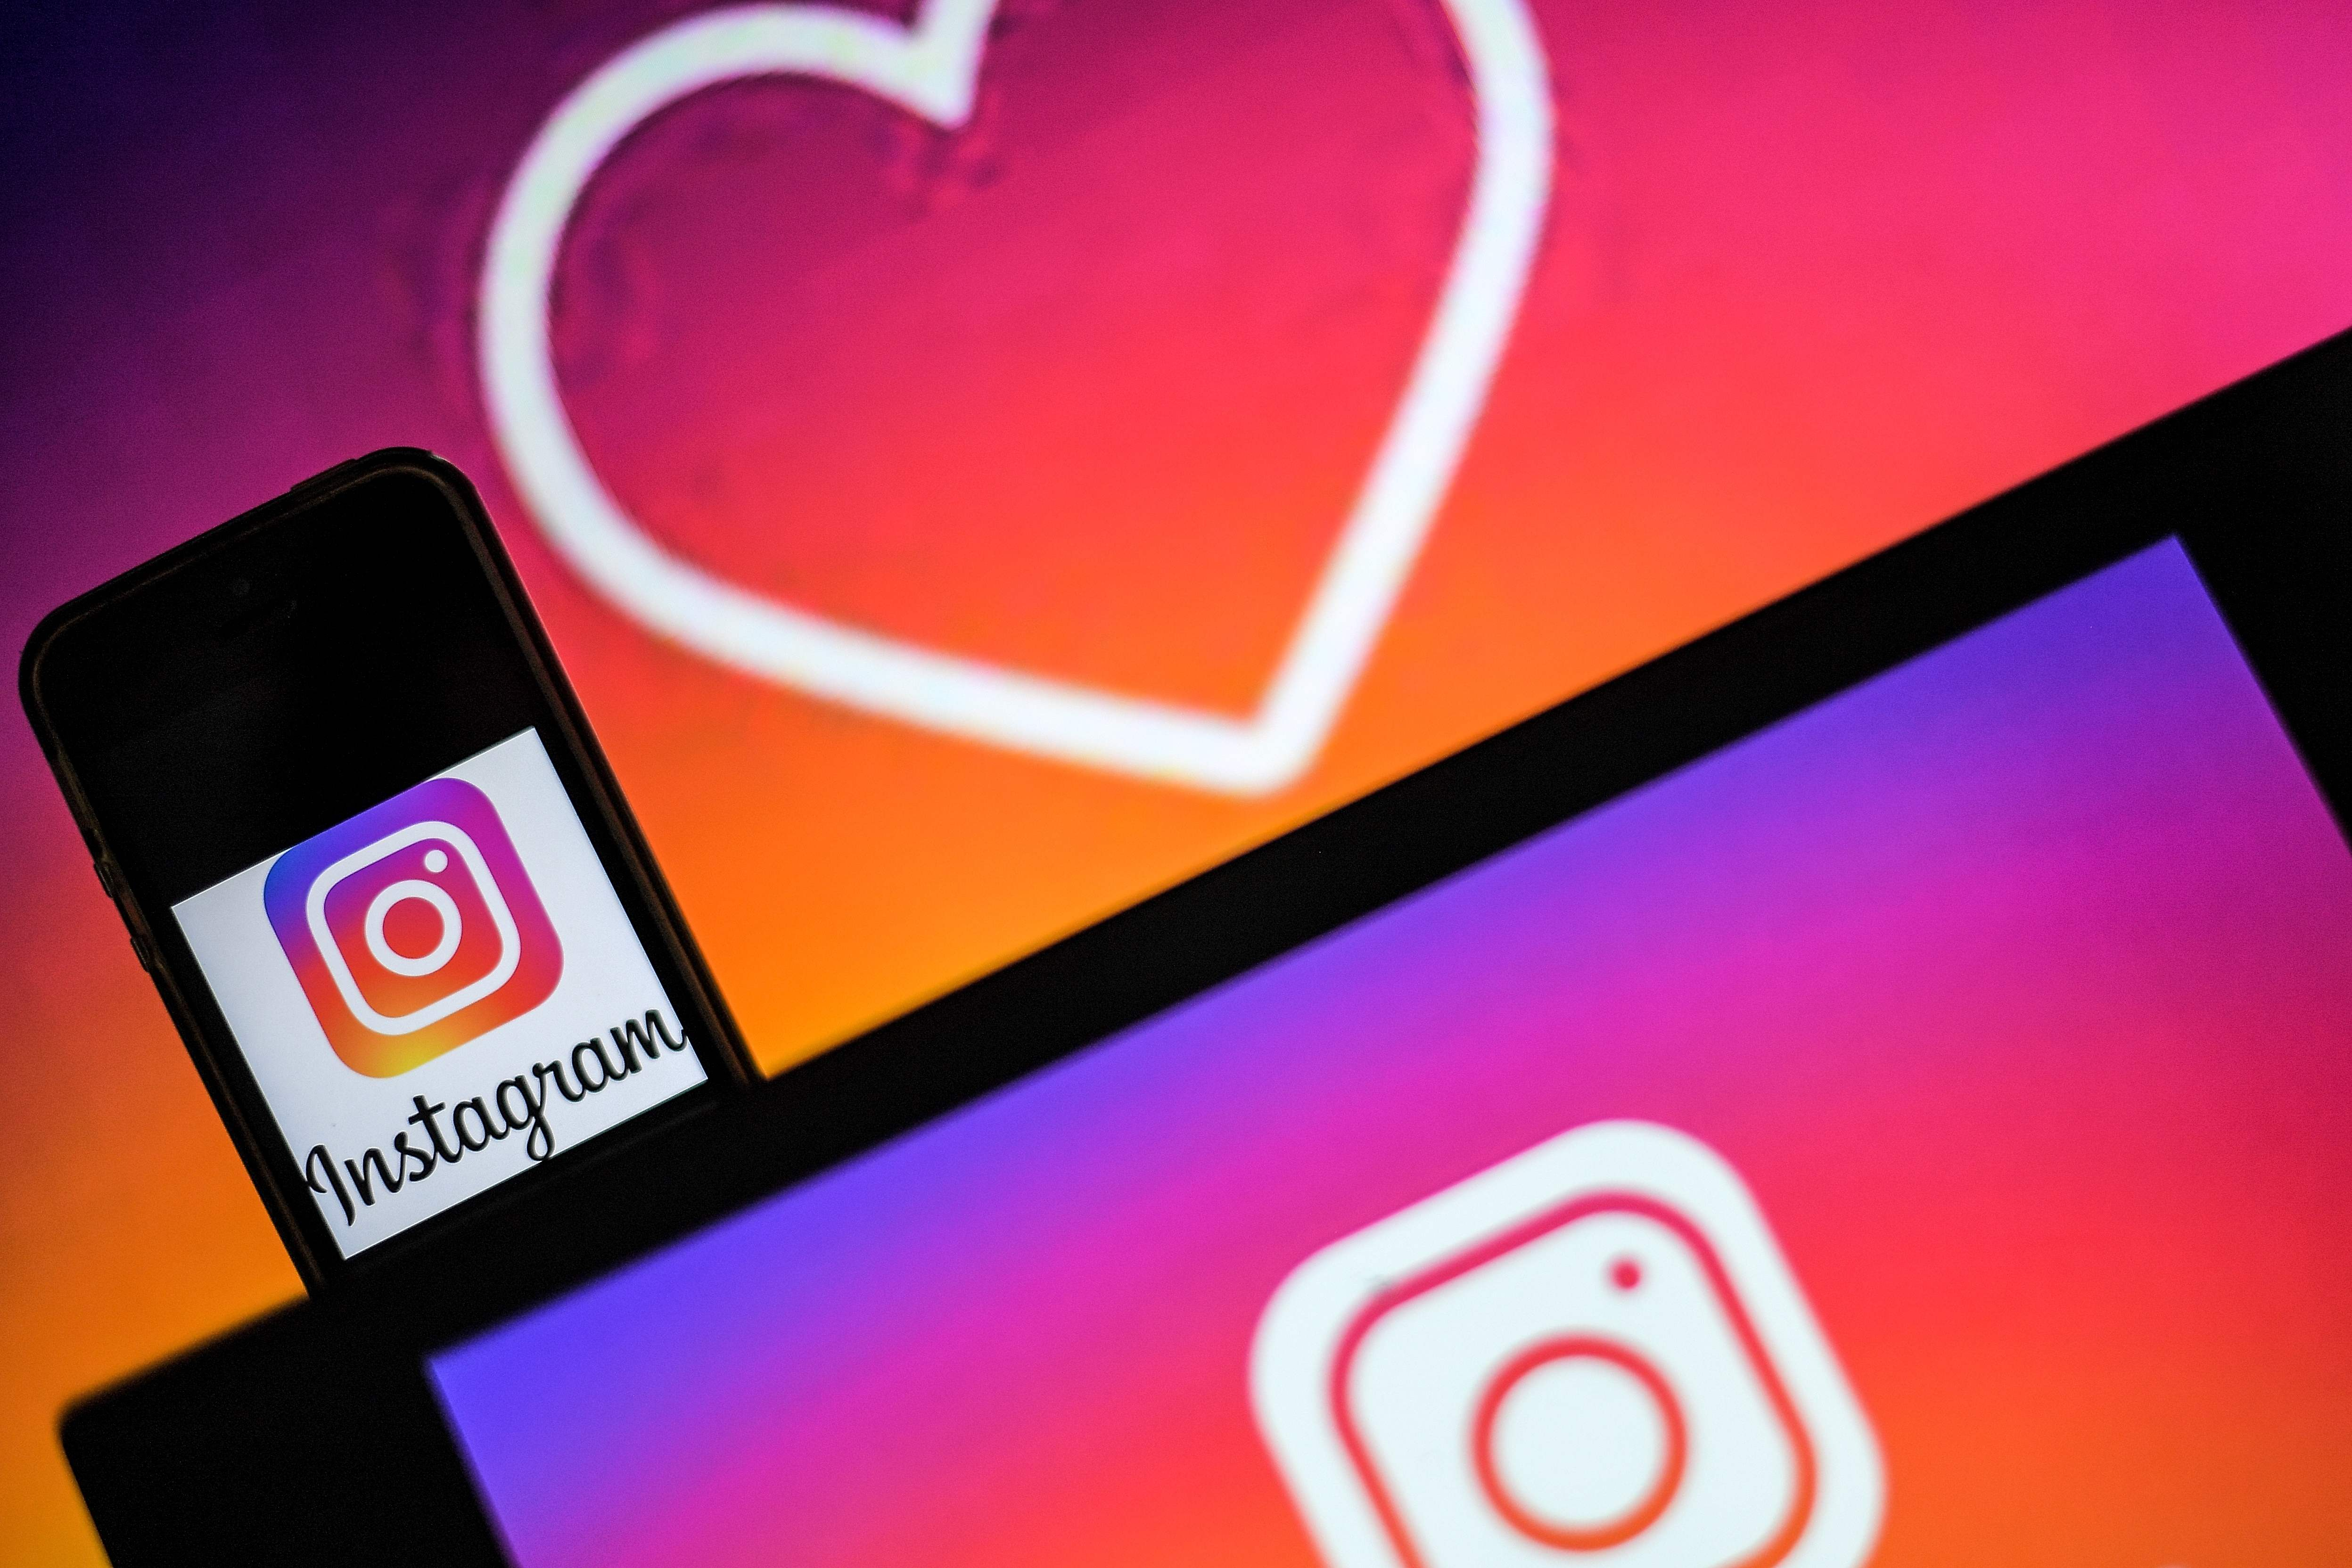 Logos of US social network Instagram are displayed on the screen of a computer and a smartphone, on May 2, 2019 in Nantes, western France. (Photo by LOIC VENANCE / AFP)